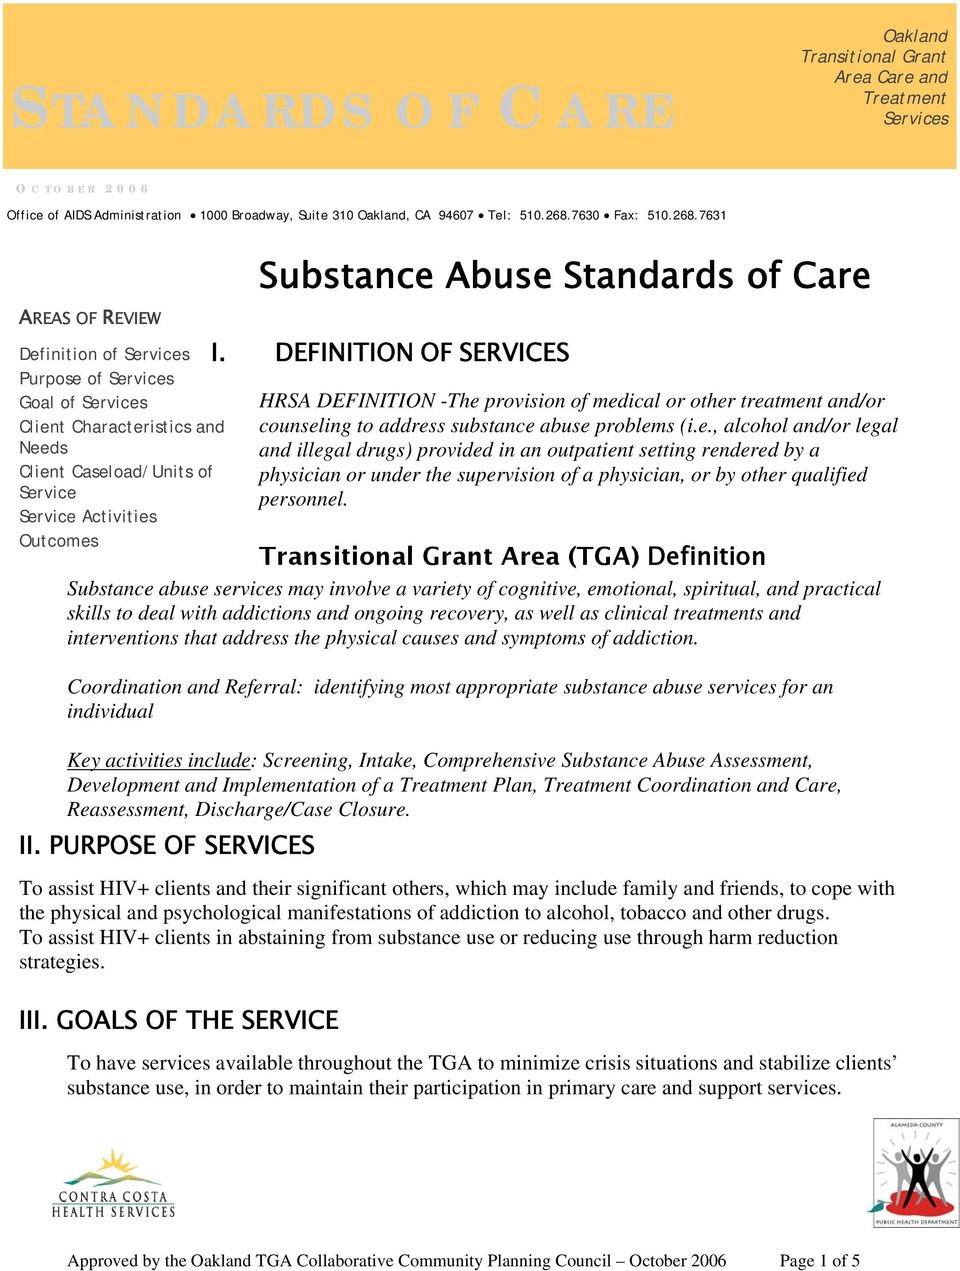 7631 AREAS OF REVIEW Definition of Services Purpose of Services Goal of Services Client Characteristics and Needs Client Caseload/Units of Service Service Activities Outcomes Substance Abuse